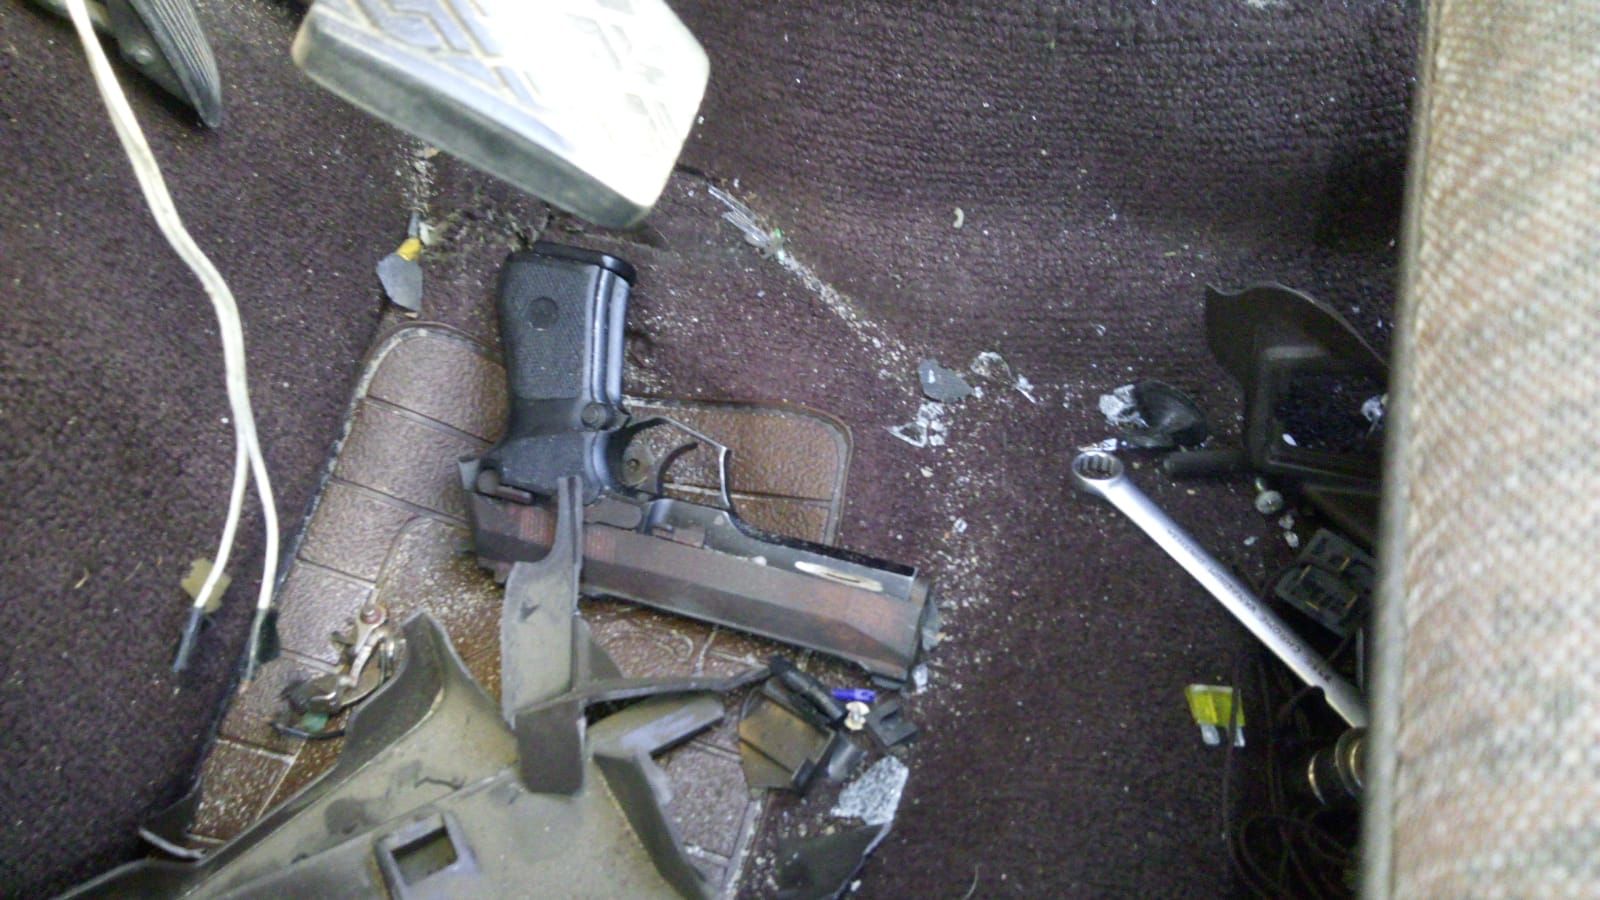 Three men arrested after pointing firearm at police in Rocklands